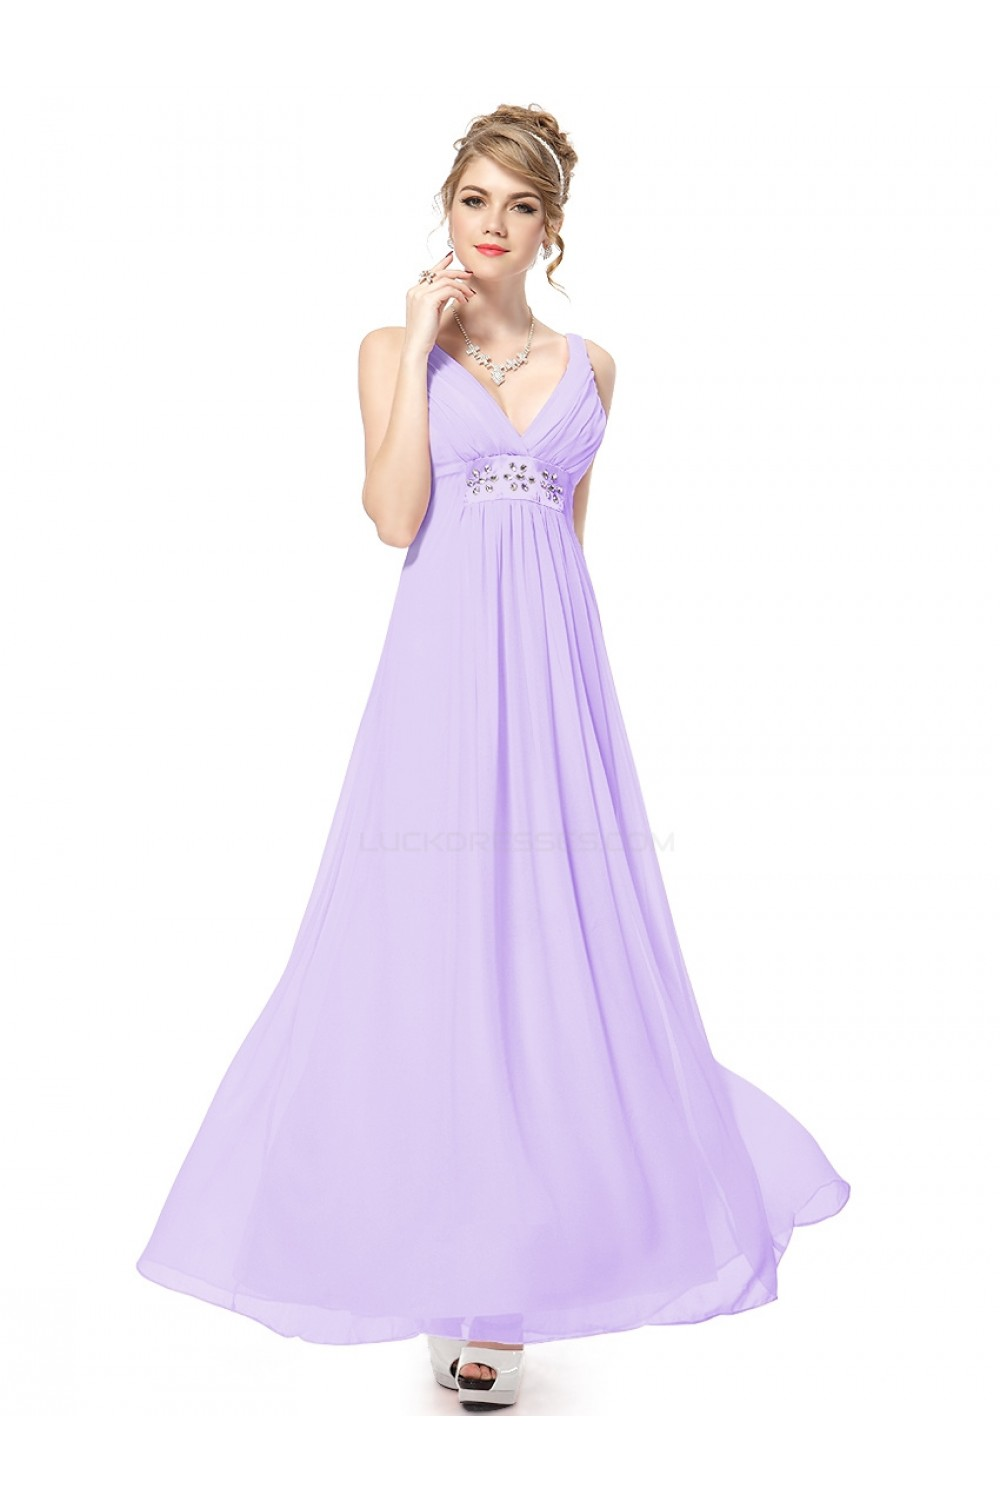 cd980578f8618 Empire Long Purple Beaded Chiffon Bridesmaid Dresses/Wedding ...